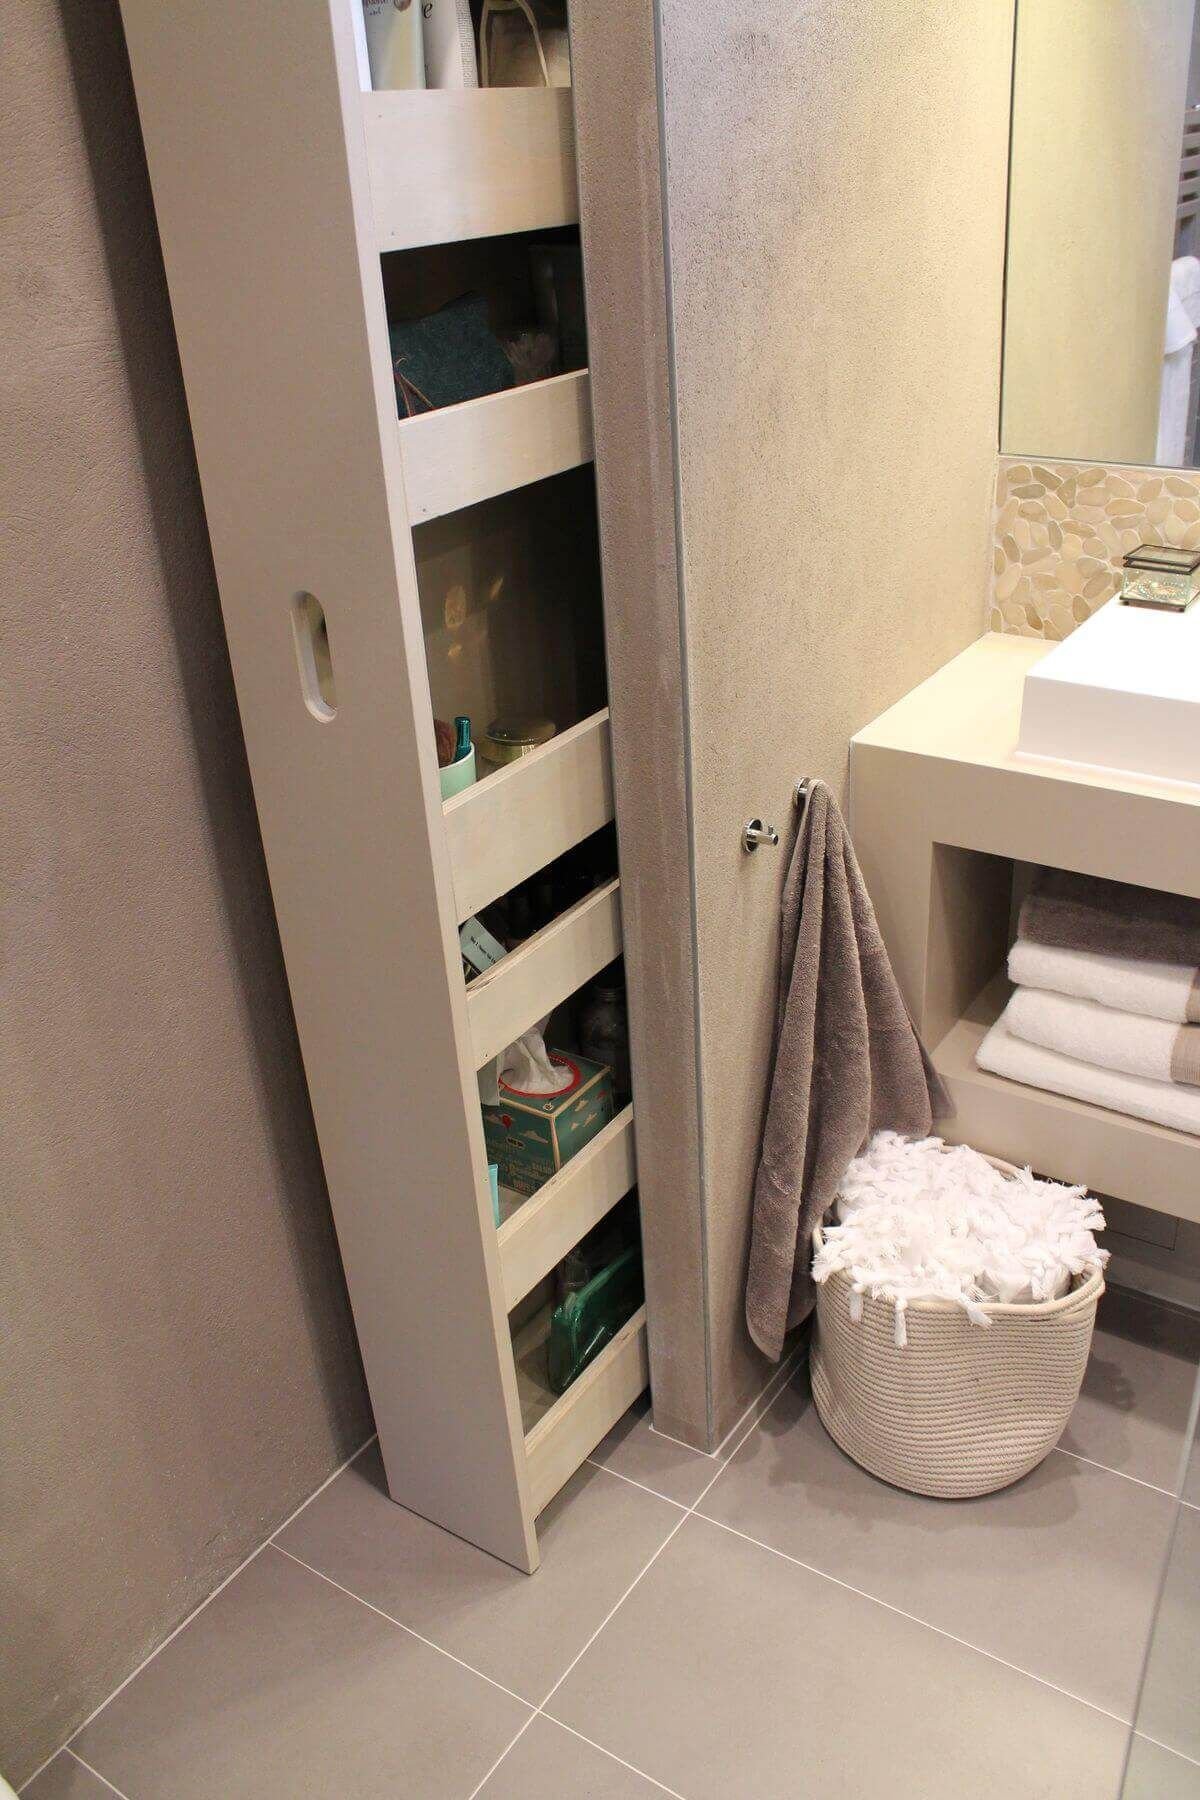 15 Stunning Built-In Shelf Ideas For A Super Organized Bathroom - Craftsonfire